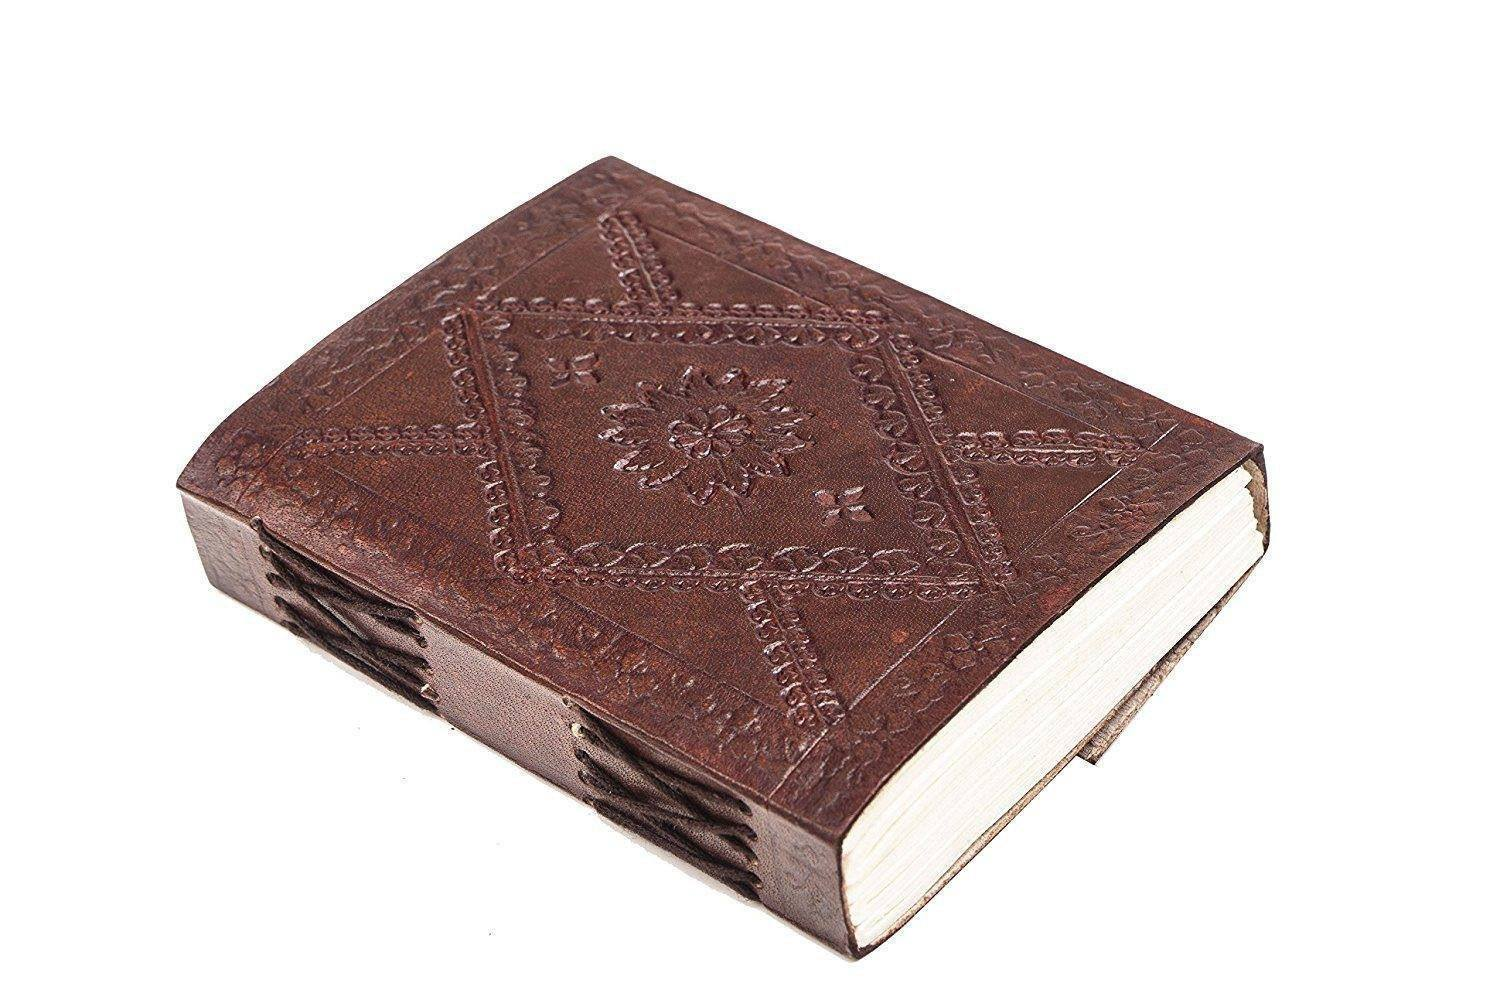 ININDIA Pure Genuine Real Vintage Leather Handmadepaper Notebook Diary For Office Home To Write Poem Daily Update - Brown Size Of 6*4